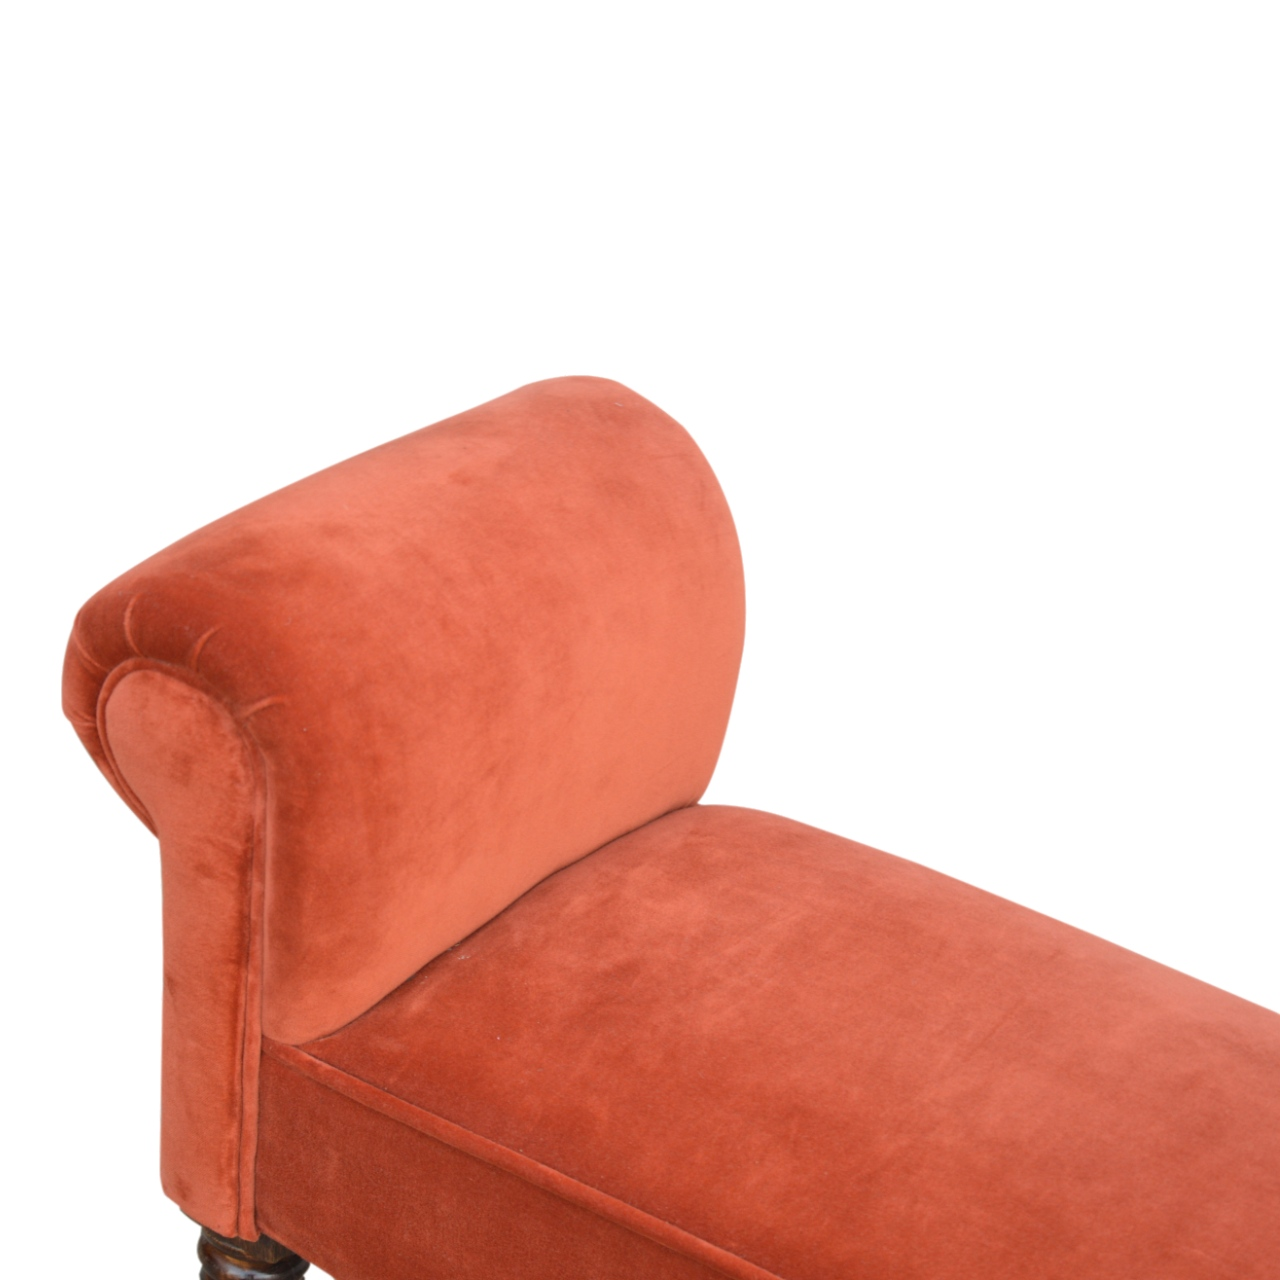 The Sofa Throw Company Brick Red Velvet Bench